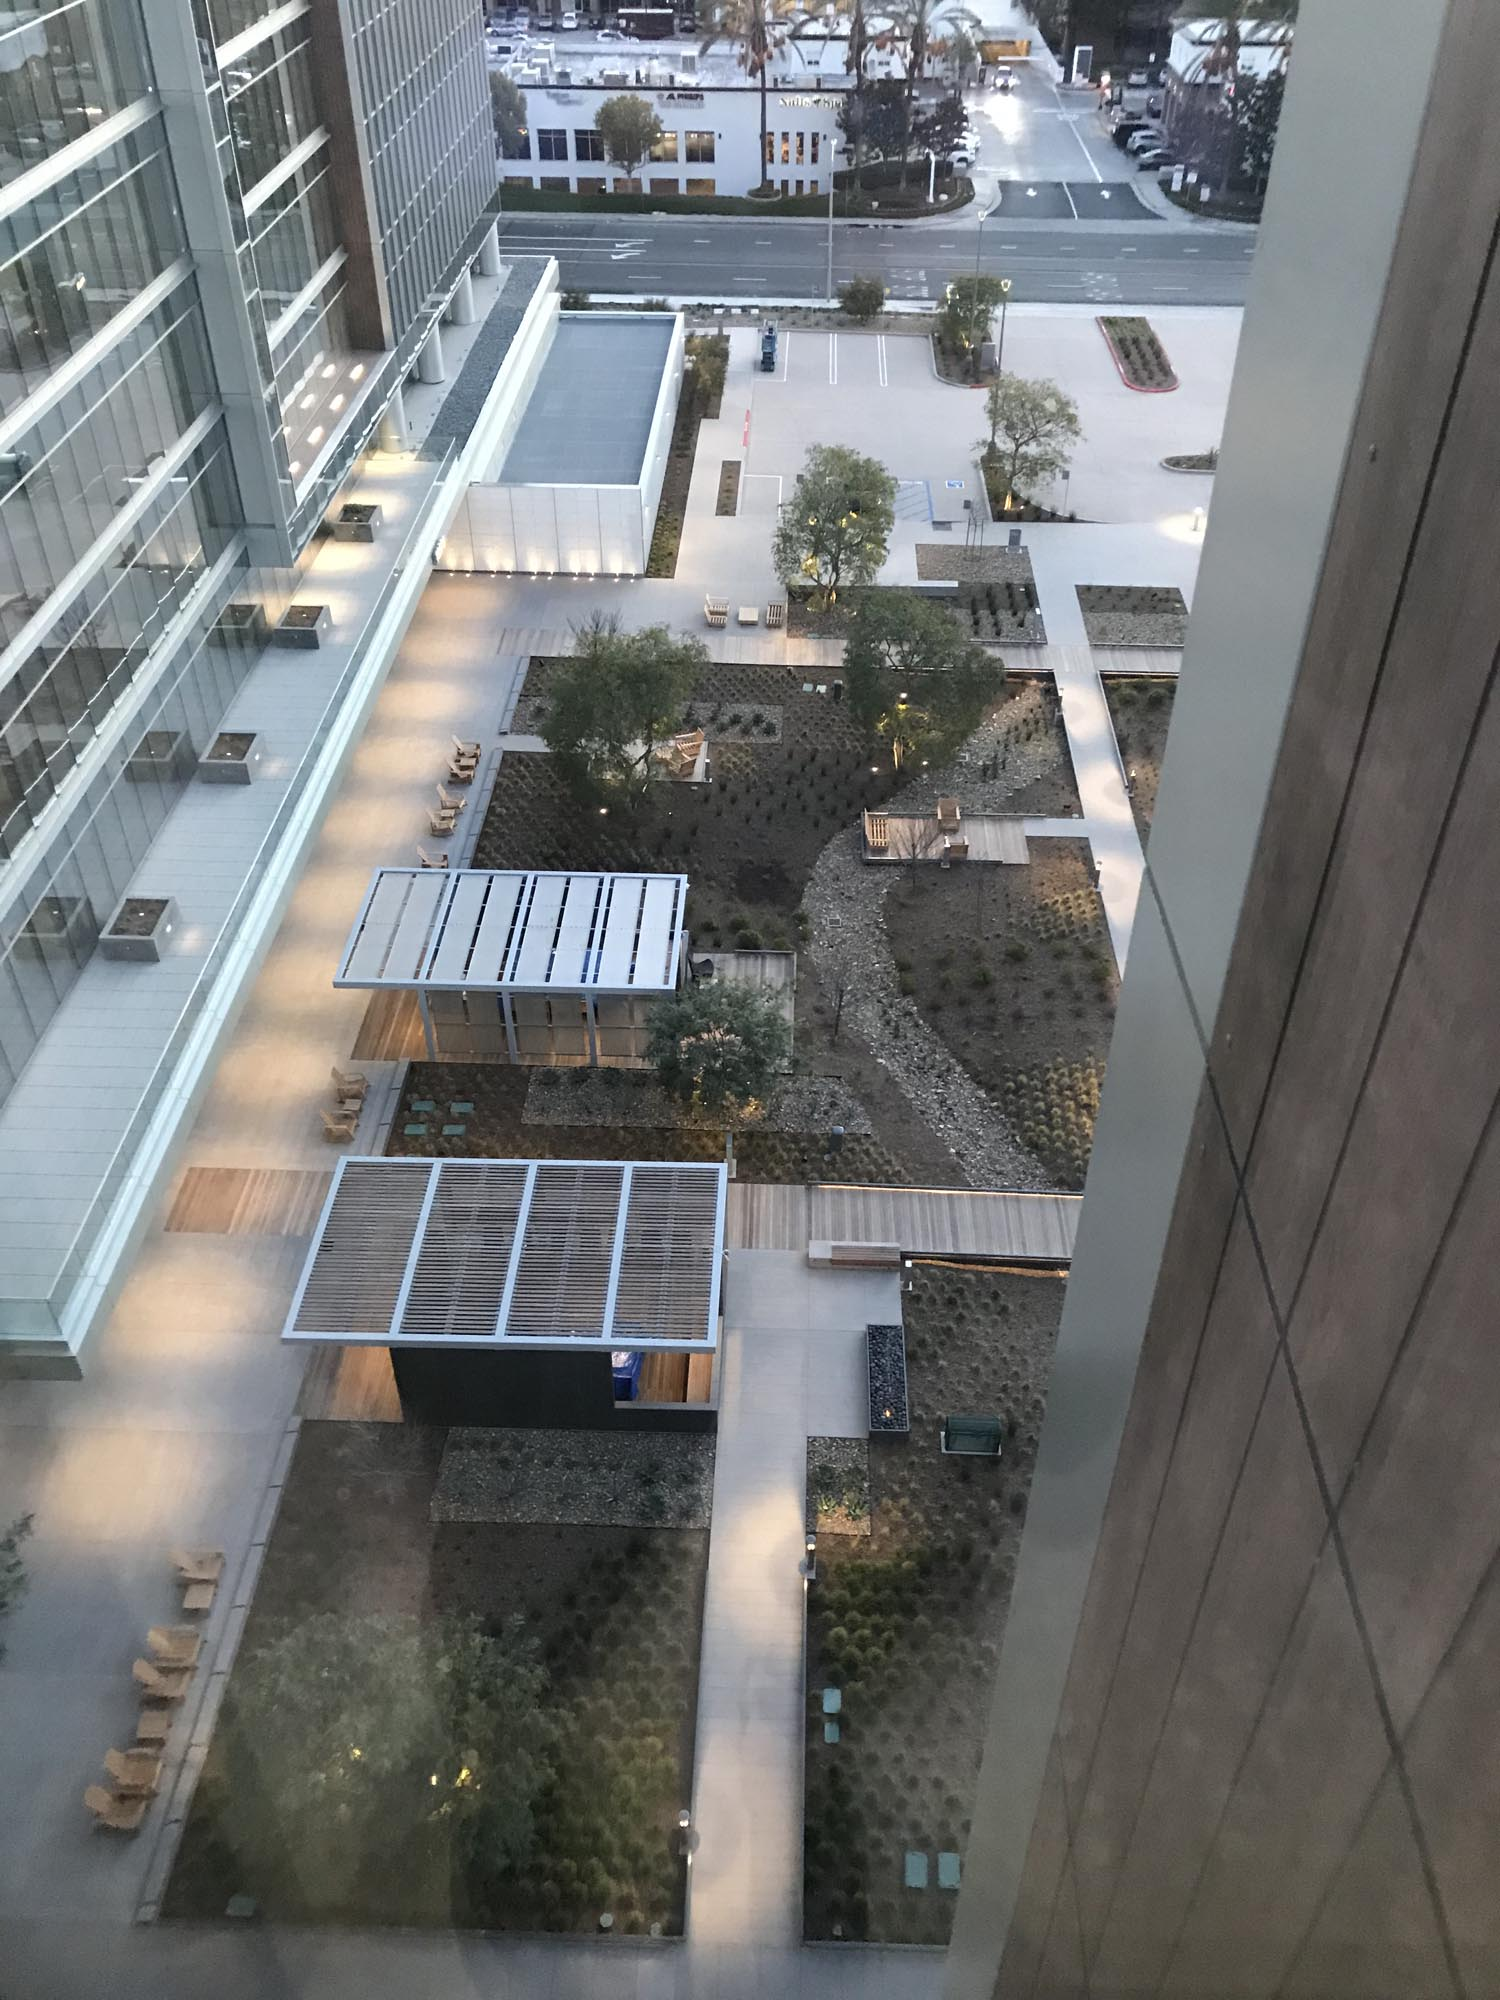 mjs landscape architecture staff joins uli for a tour of the